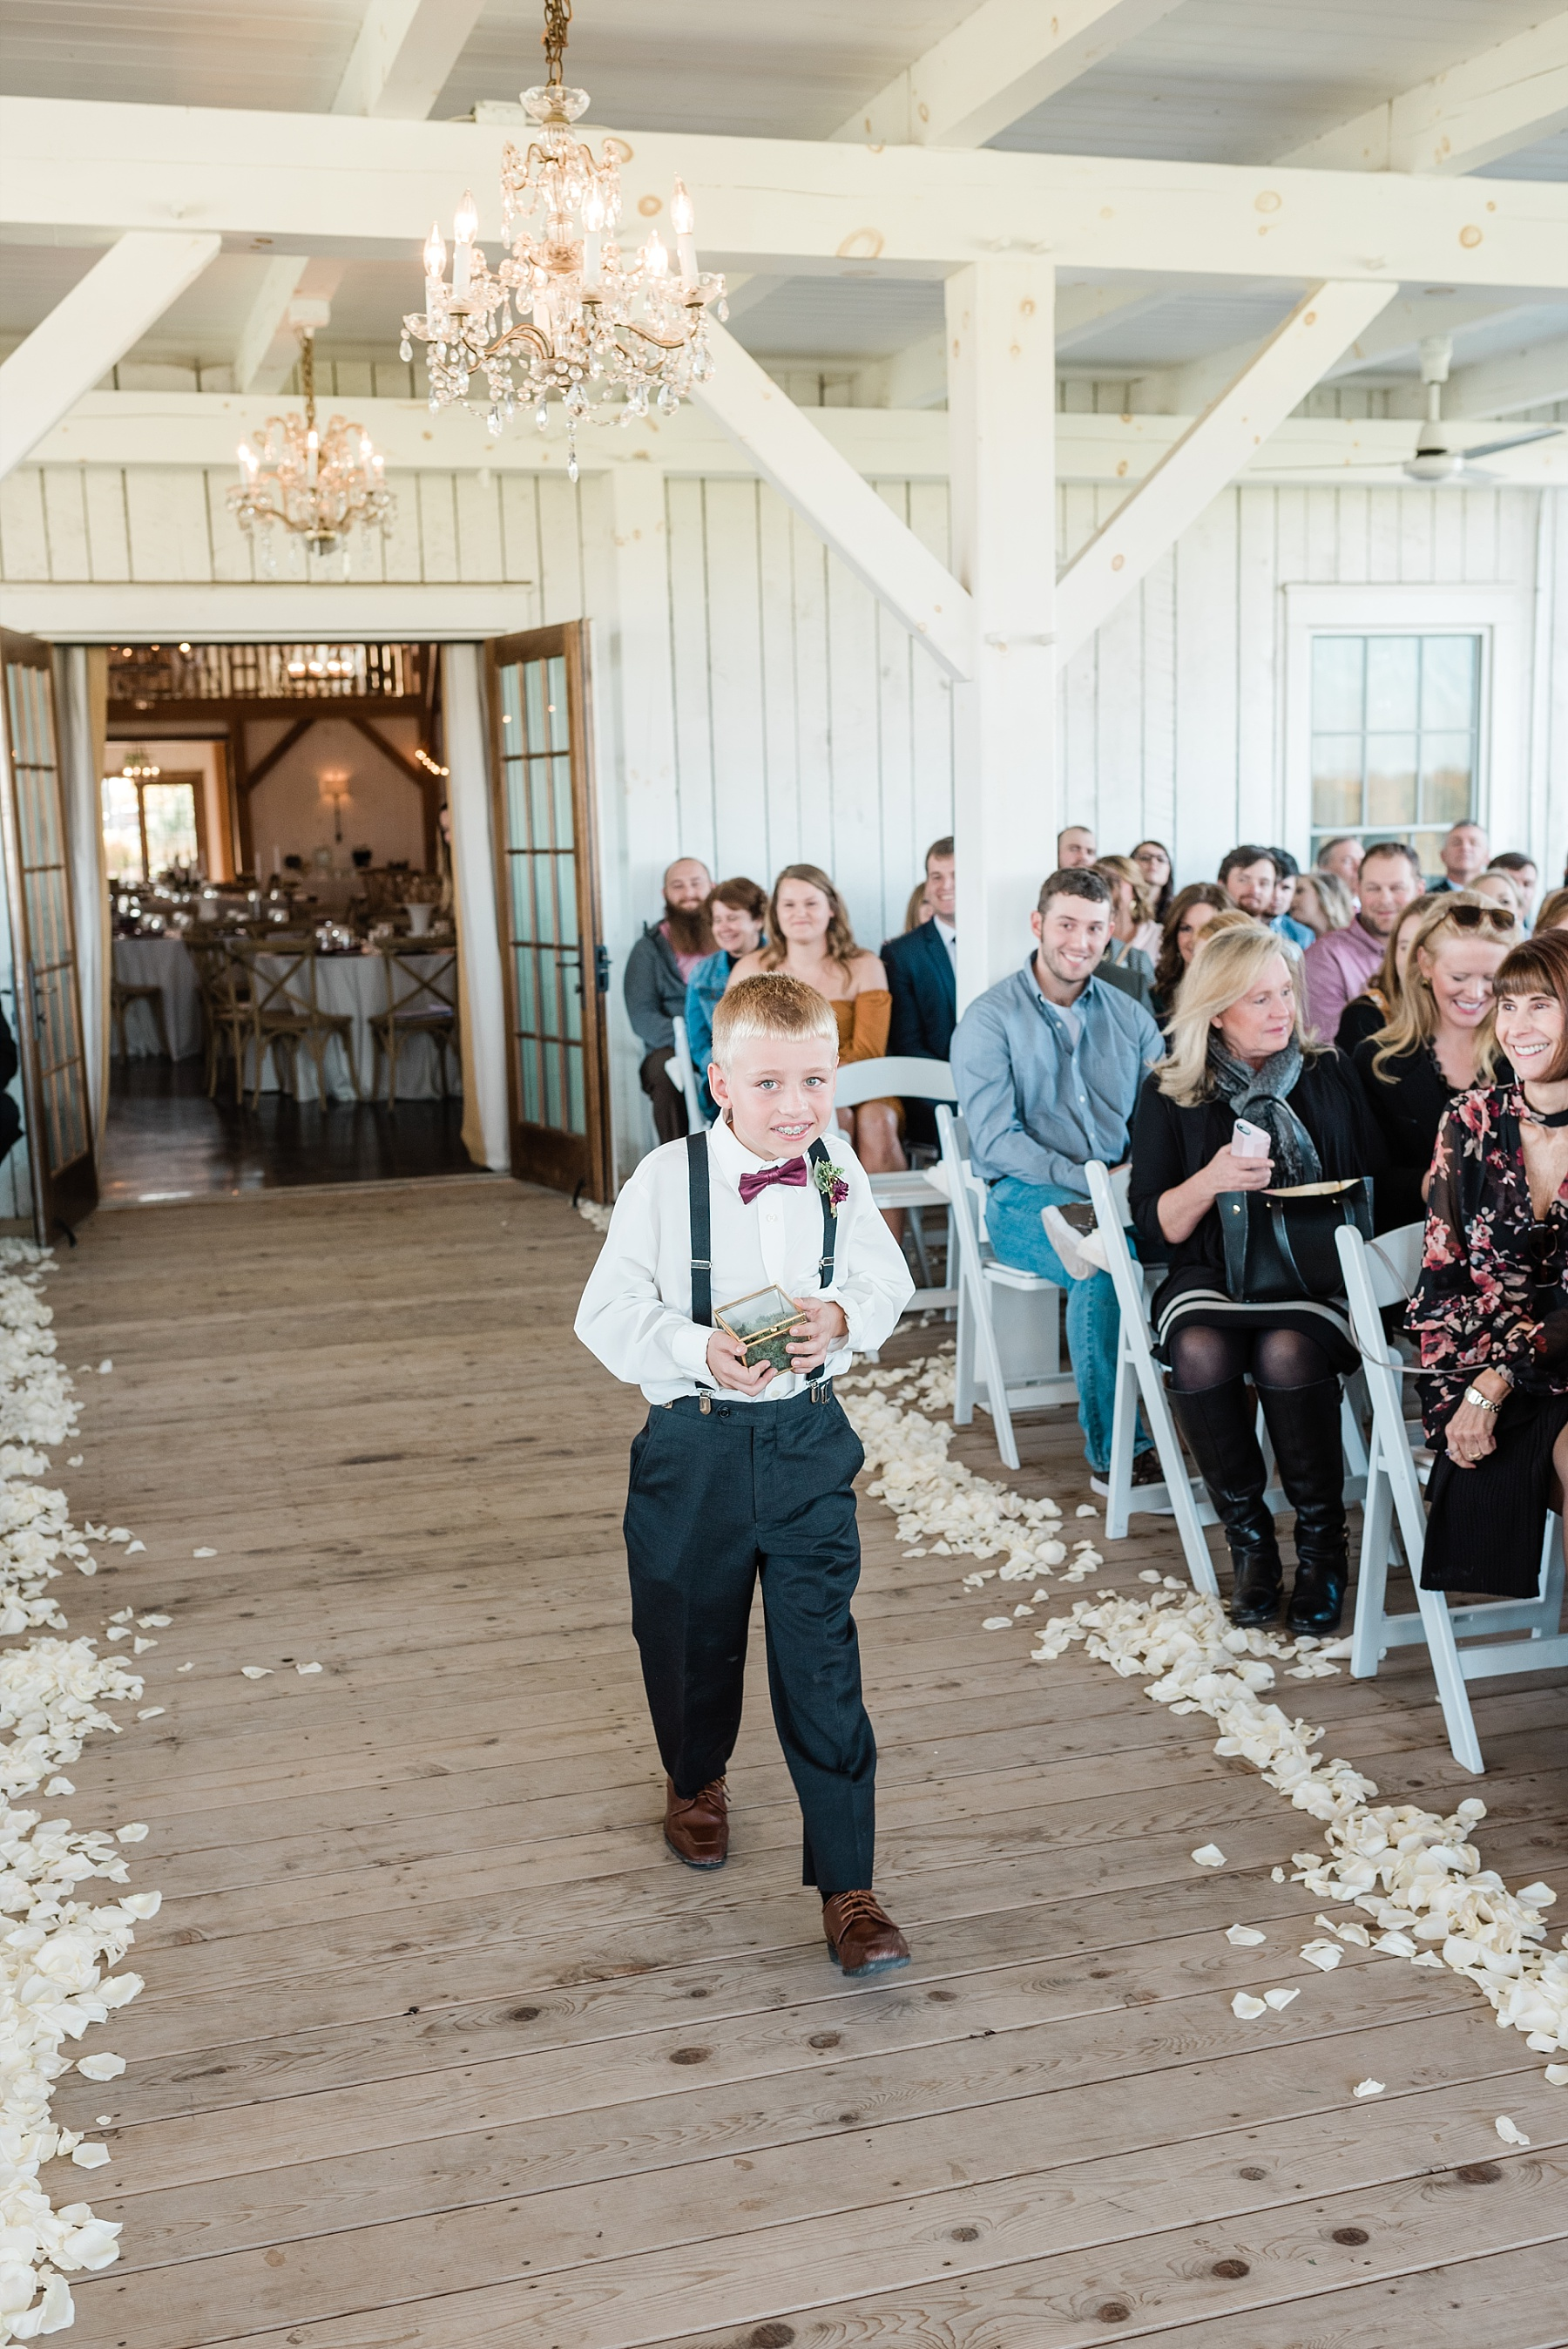 Golden Autumn Outdoor Wedding with Ivory, Bergundy, and Blush Color Palette at Blue Bell Farms  by Kelsi Kliethermes Photography_0054.jpg